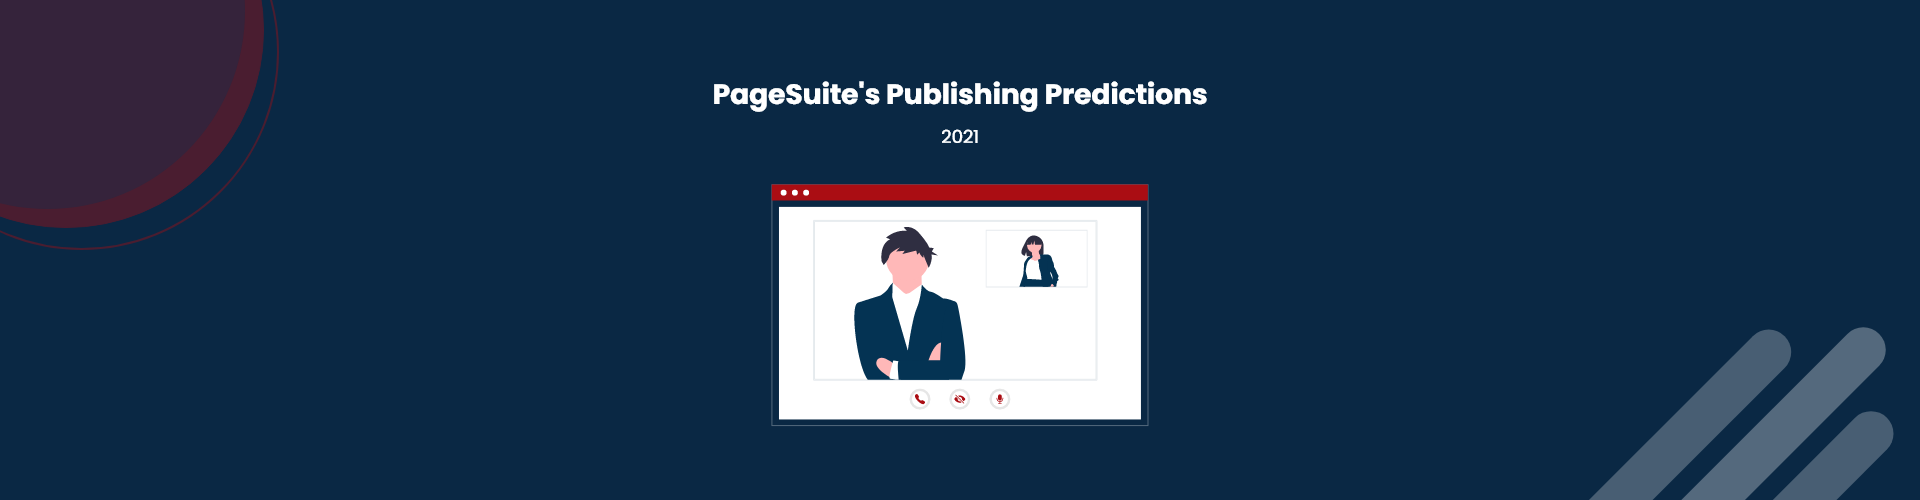 Header image of PageSuite's Publishing Predictions